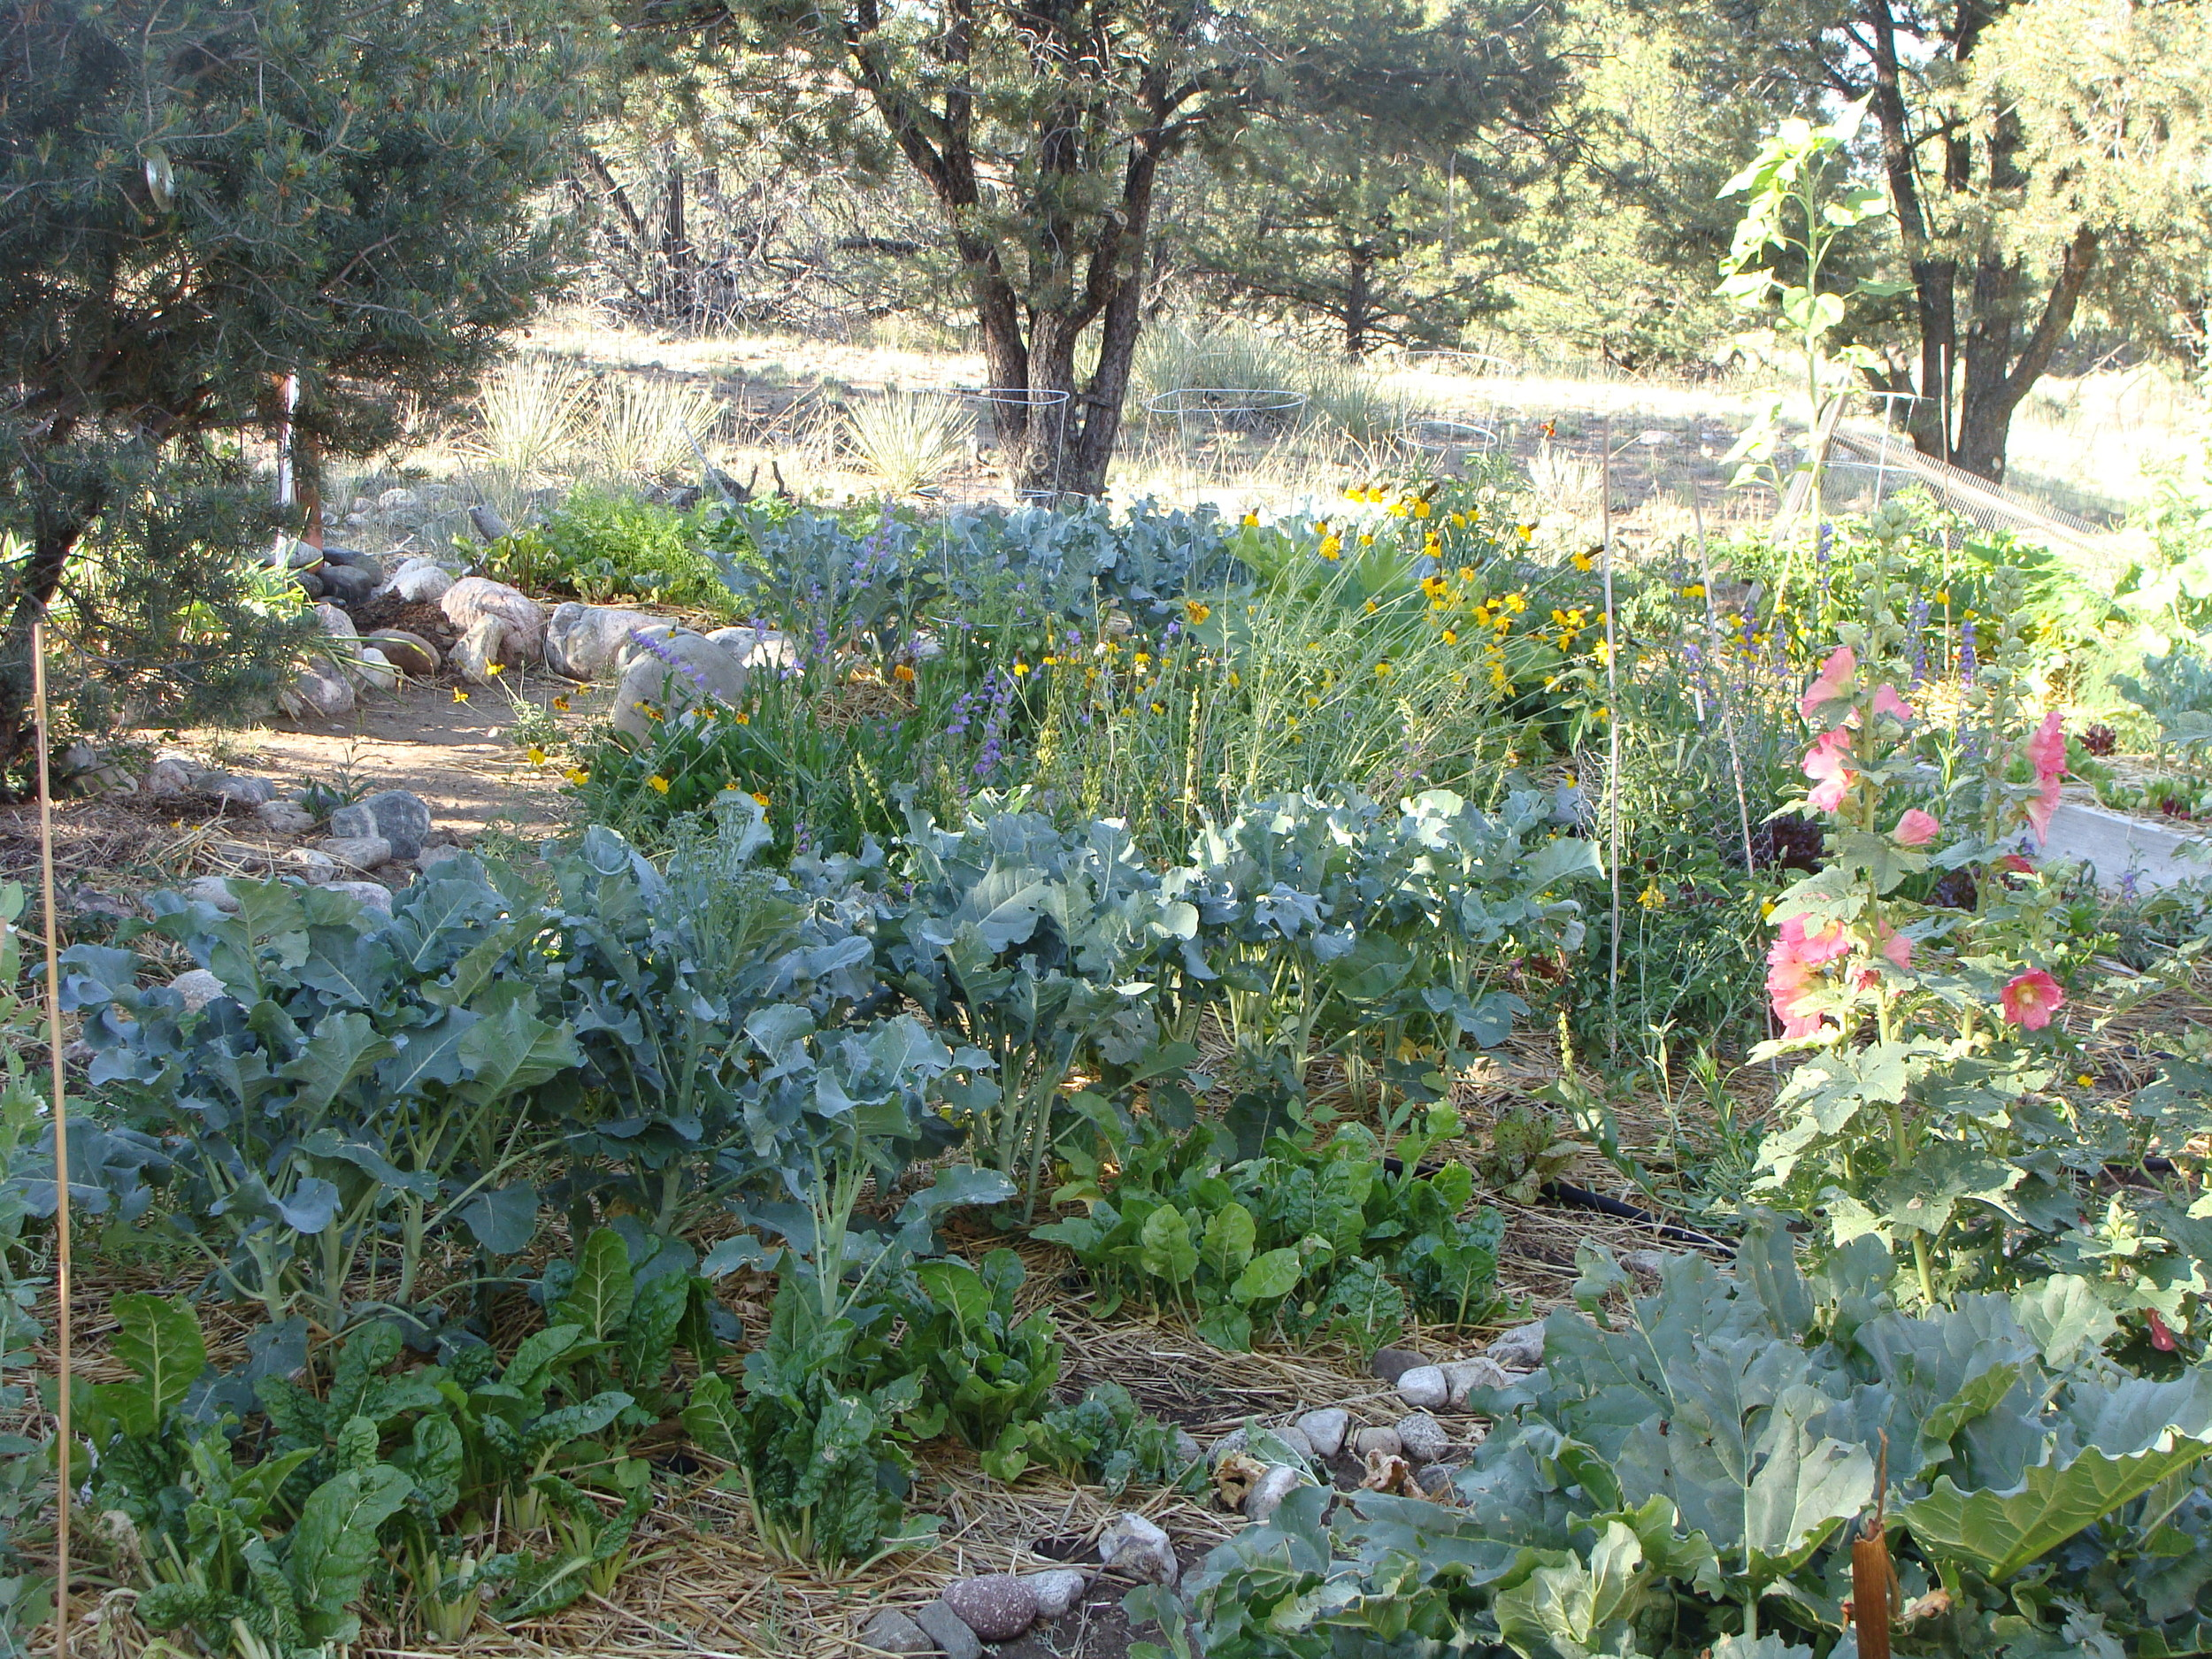 The garden   offers a visual feast to match the bounty of our harvests.